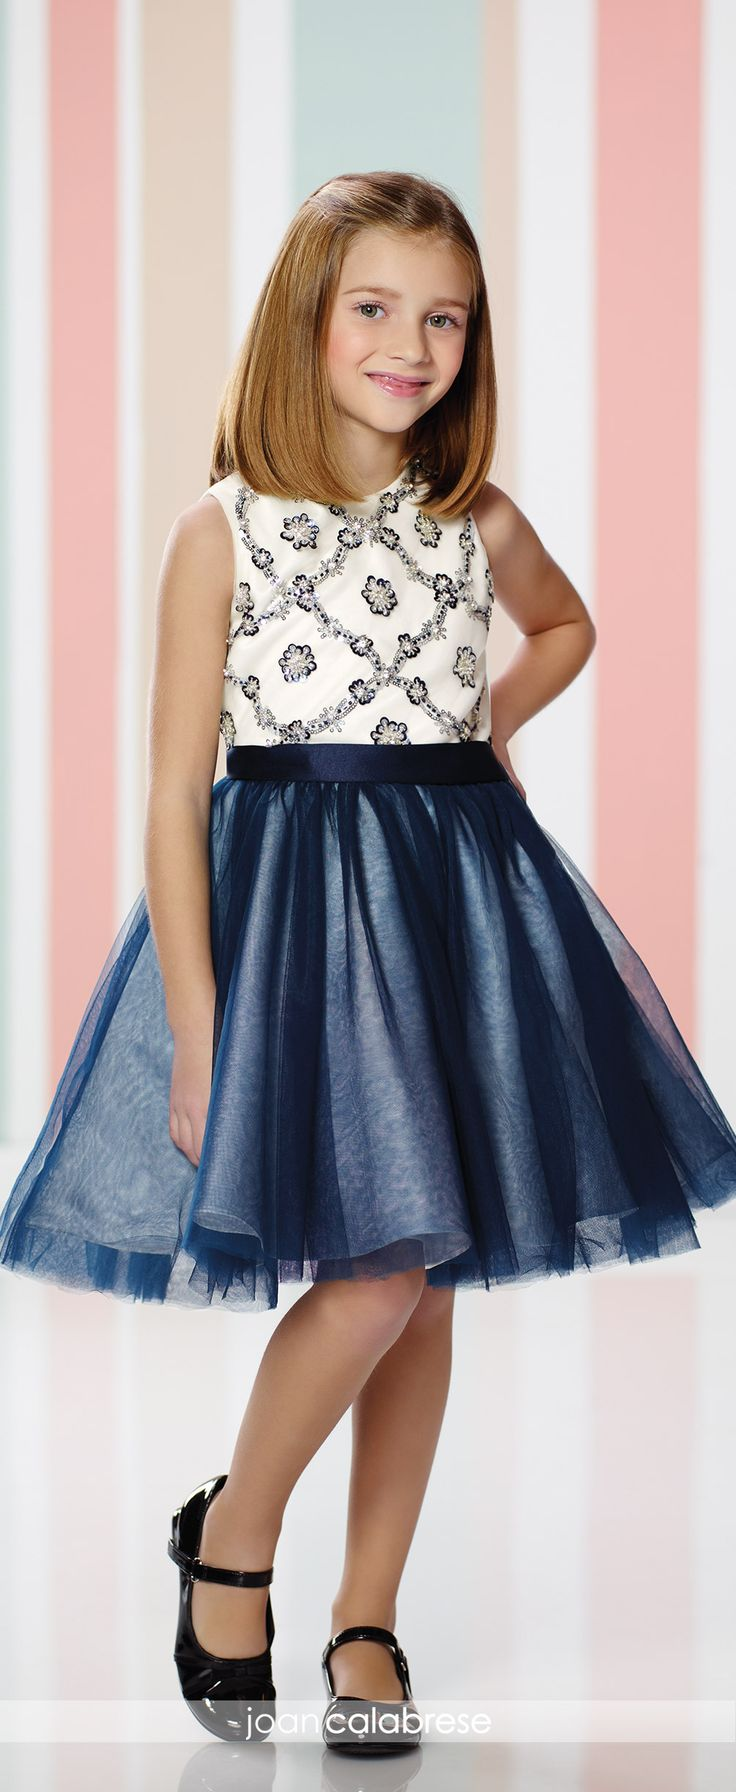 Joan Calabrese for Mon Cheri - 216317 - Sleeveless satin and tulle knee-length full A-line dress with high jewel neckline, tulle overlay bodice with crisscross sequin trim, satin waistband, double layered tulle overlay skirt.Sizes: 2 – 14Color: Ivory/Navy Blue